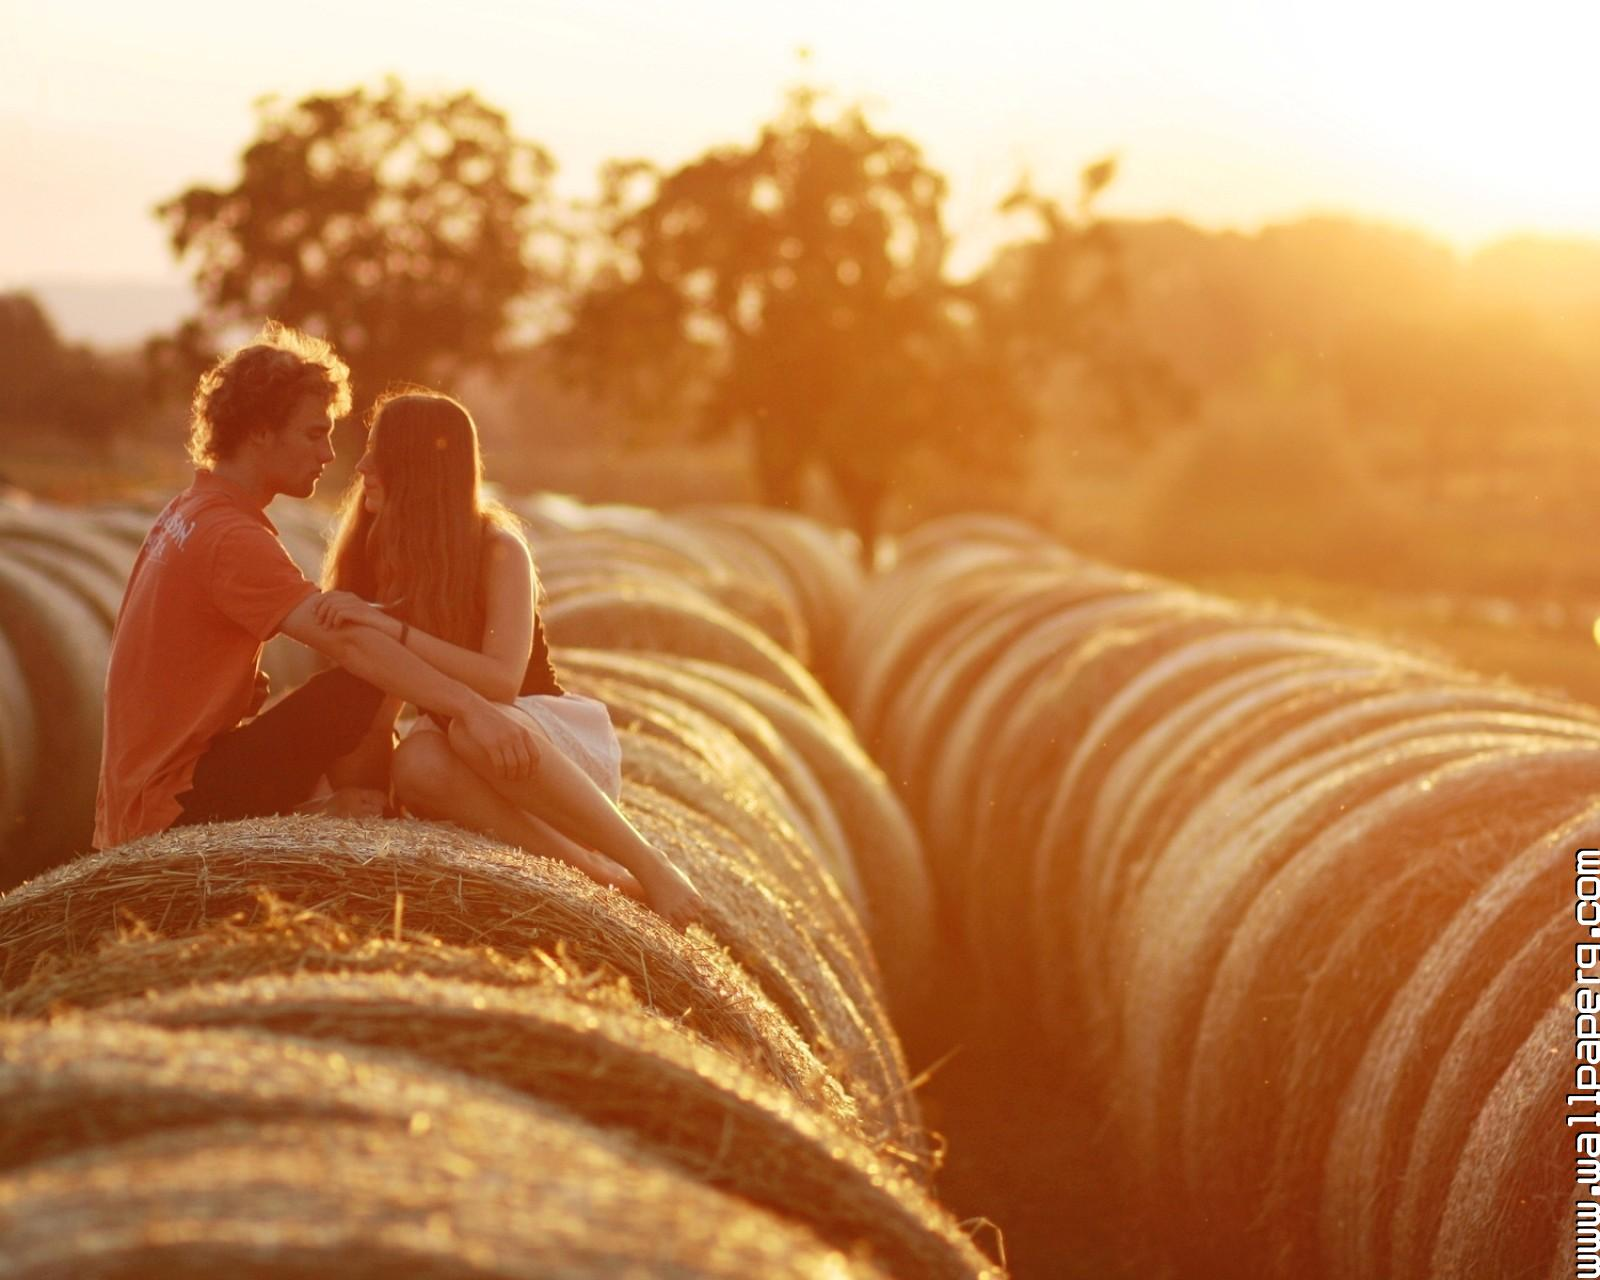 Download For Free : Download Now